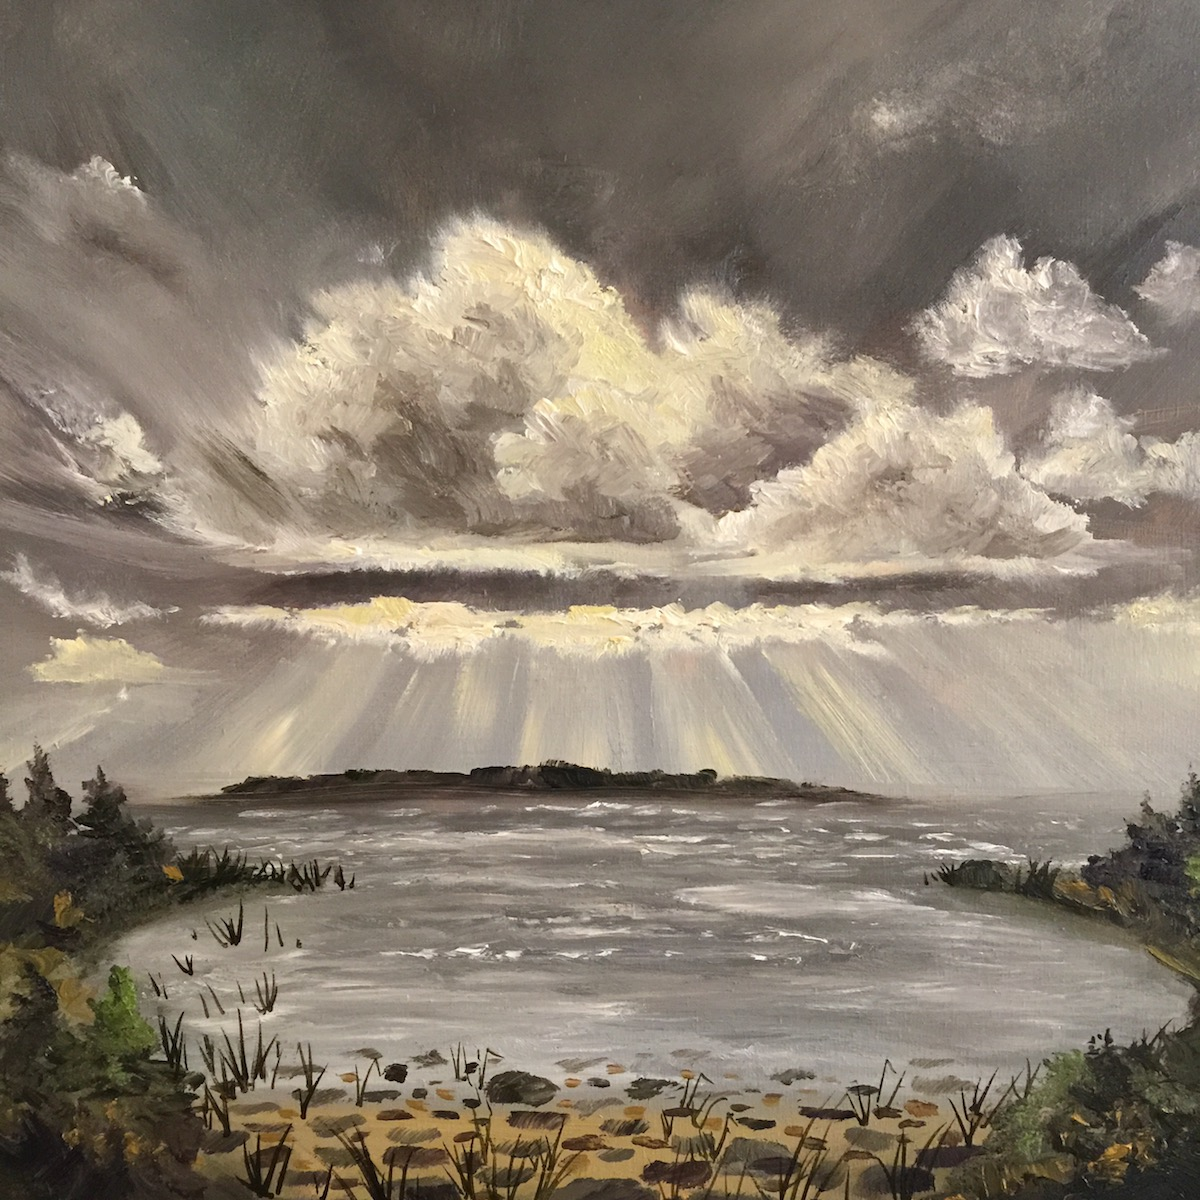 Cathead Bay - Painting by Stephanie Schlatter